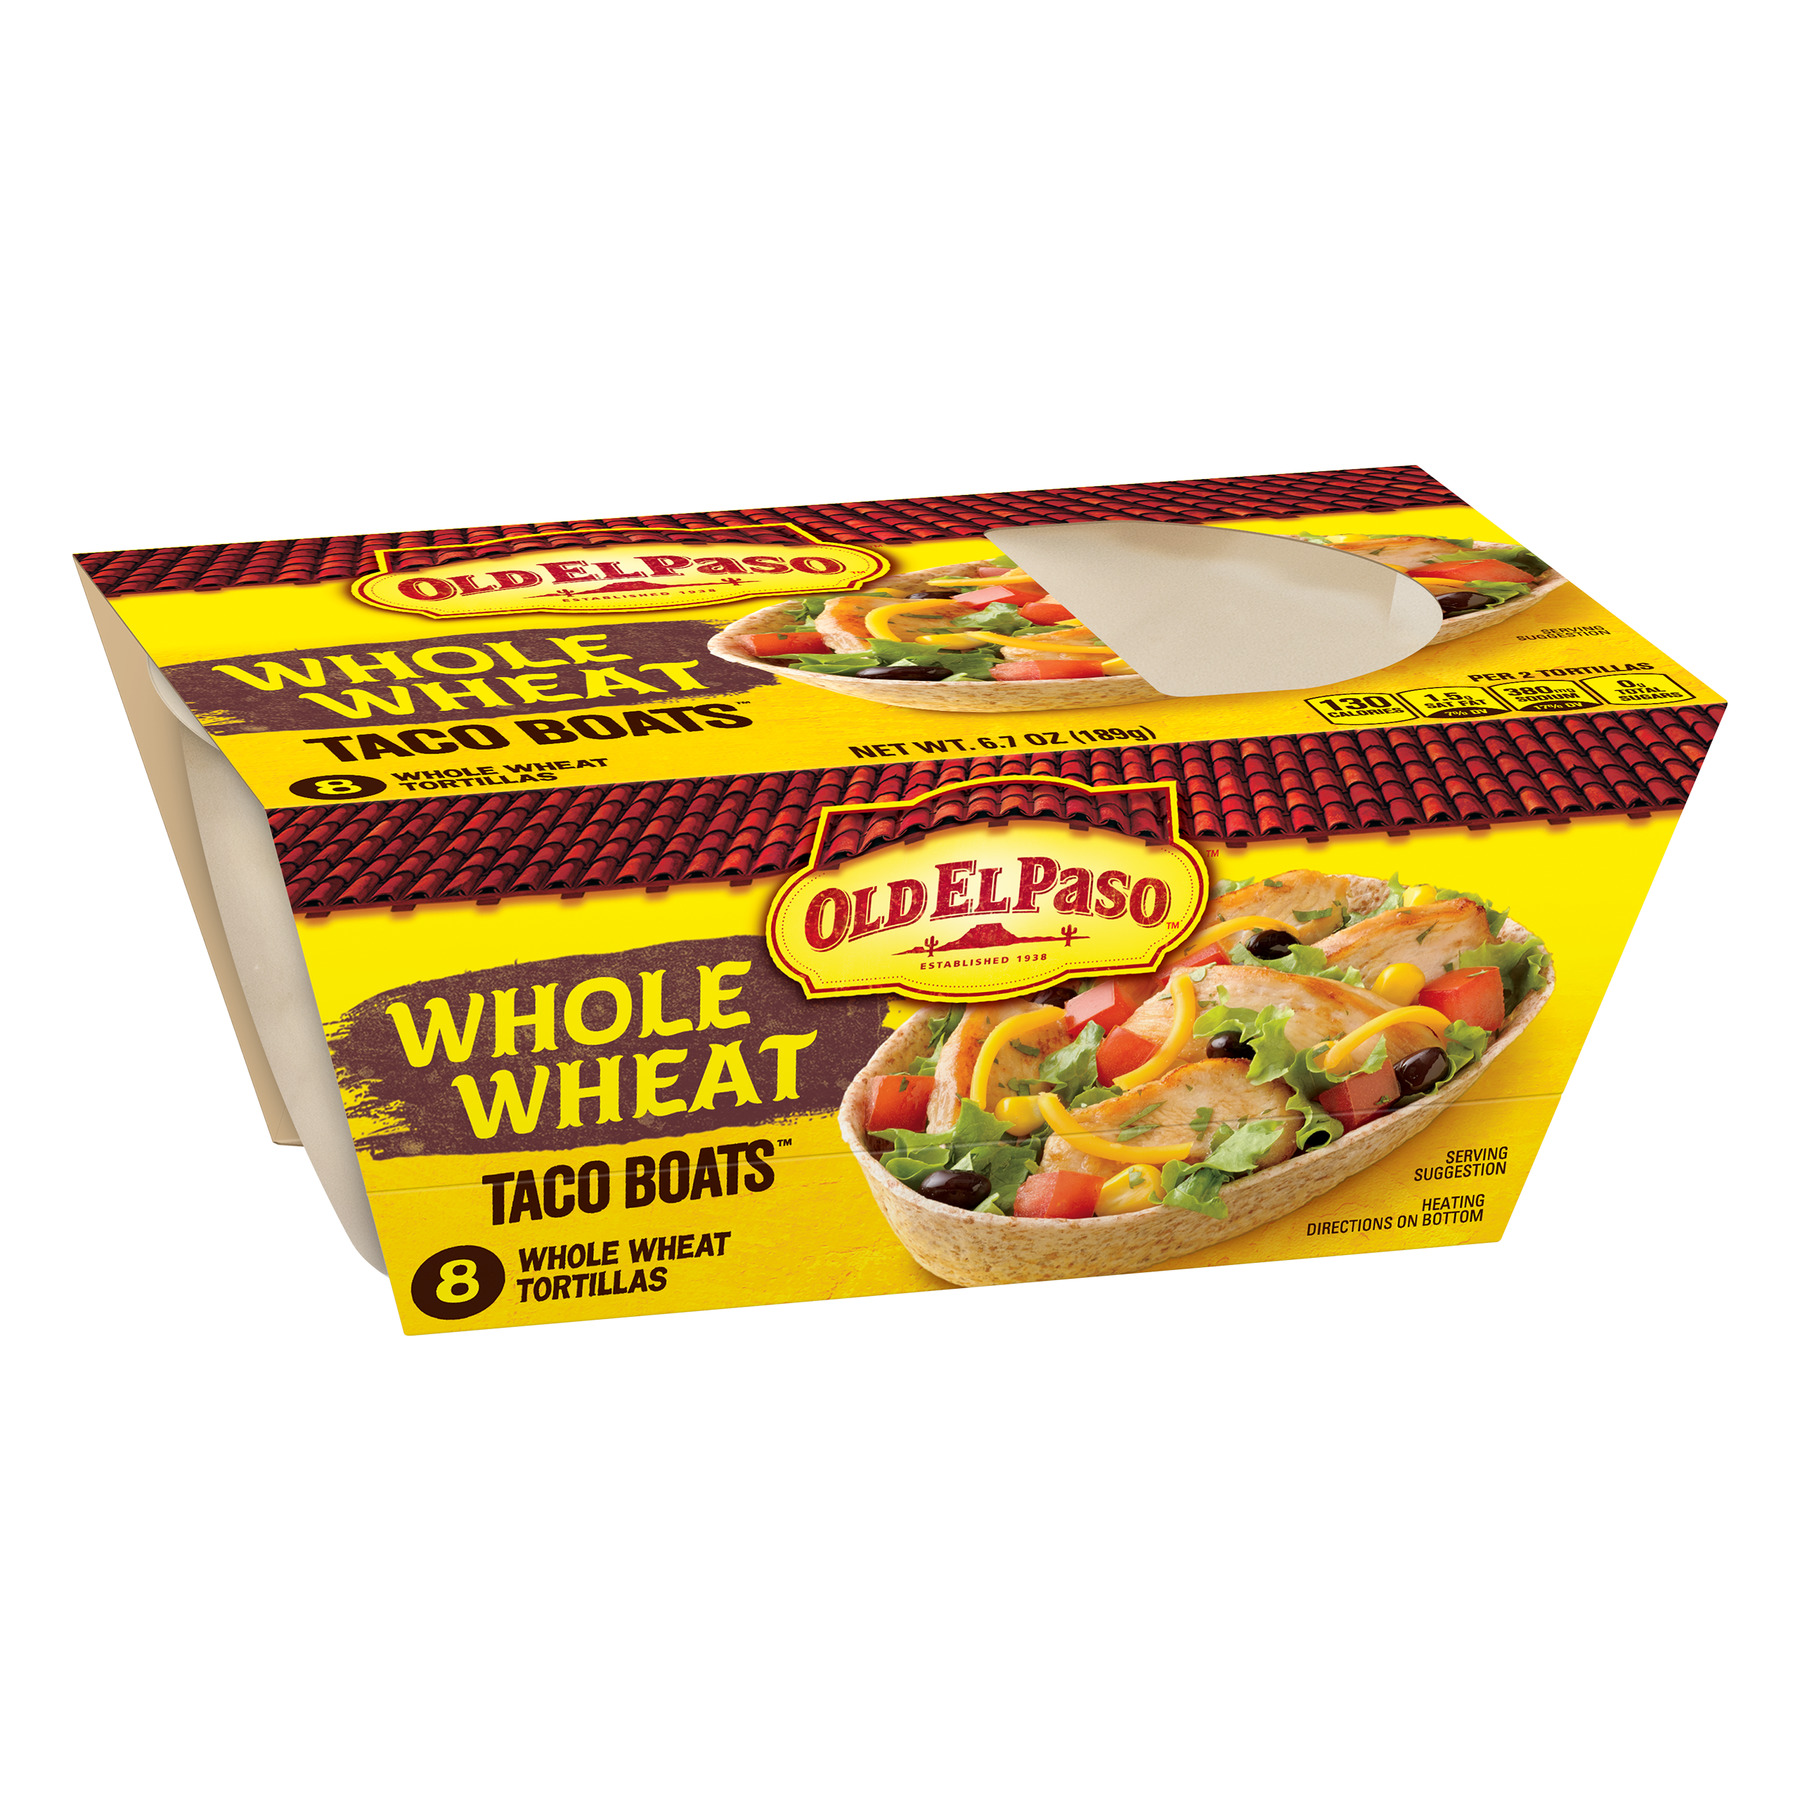 Old El Paso Taco Boats Whole Wheat Tortillas, 8 Ct, 6.7 oz